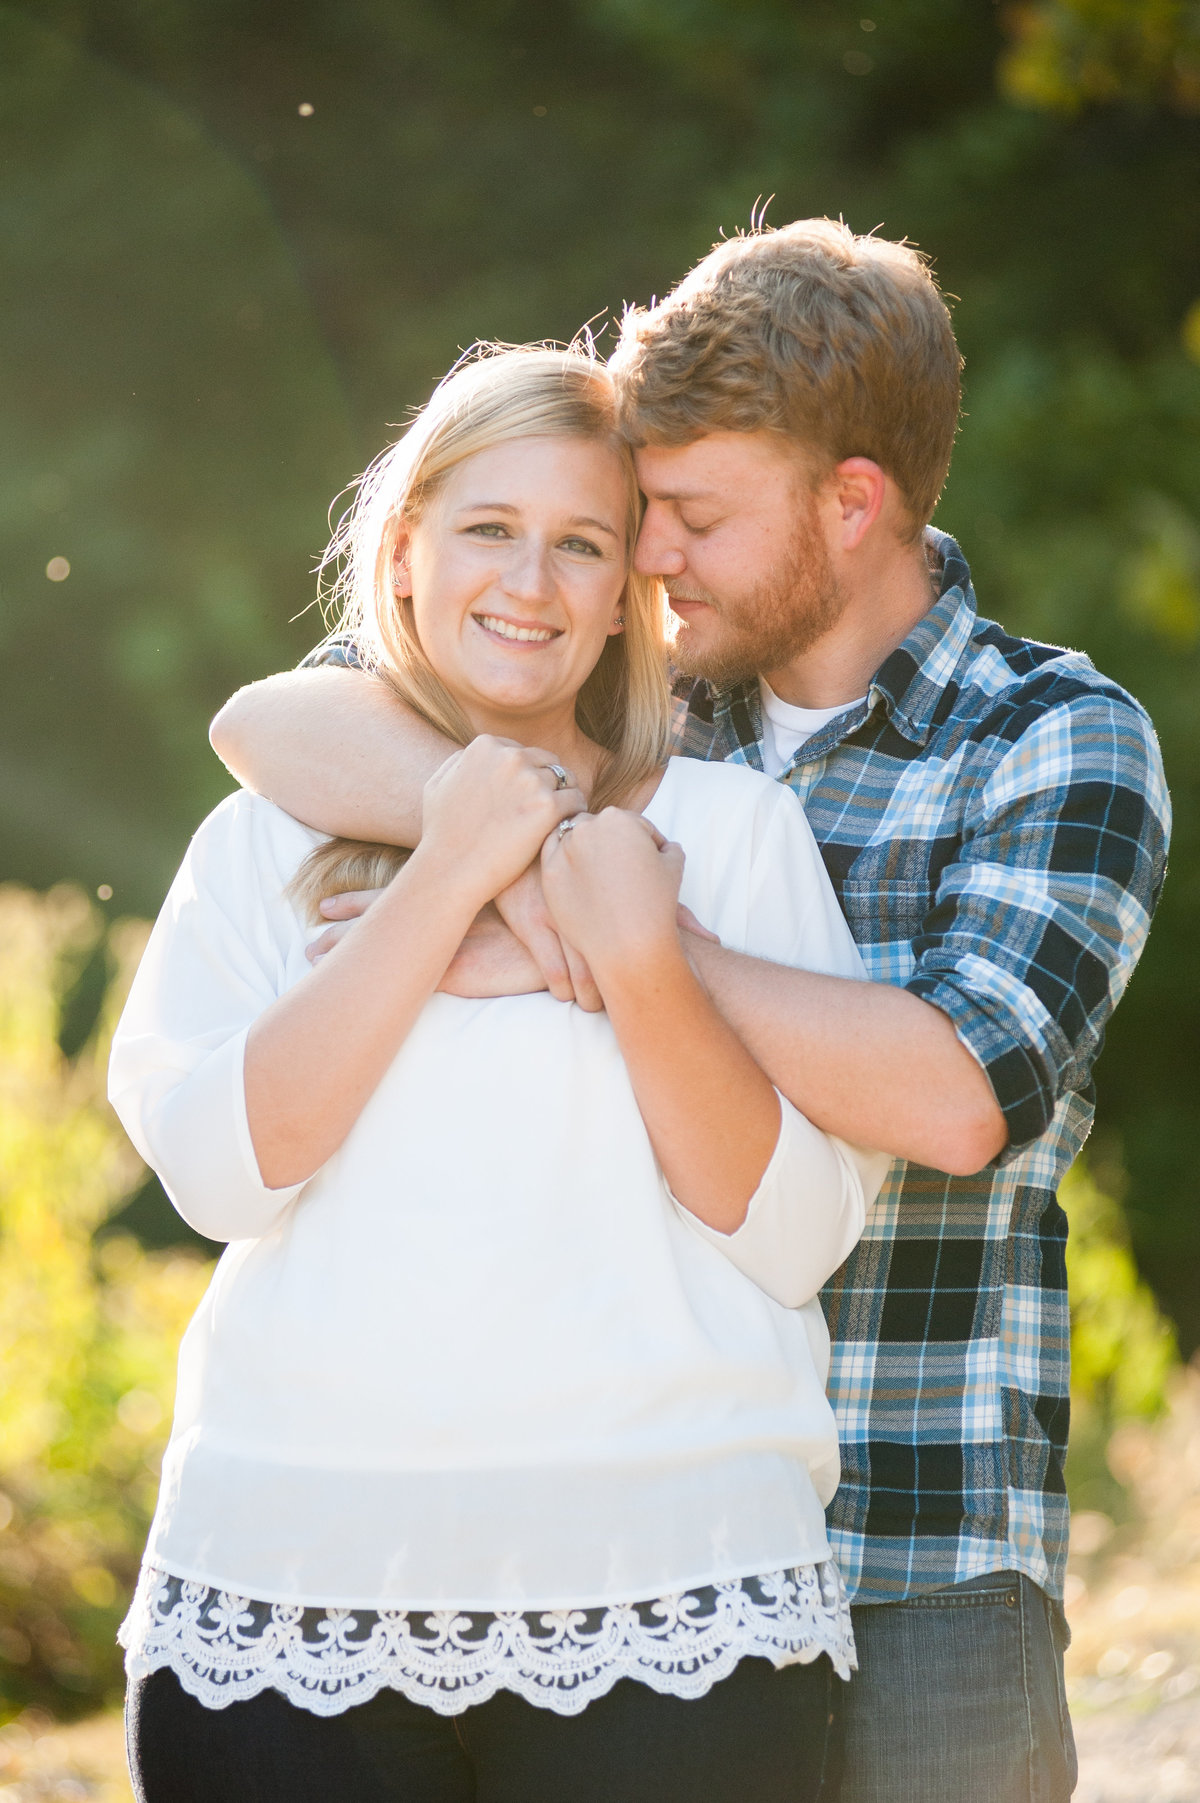 Chelsea and Brian-Engagement Session-0020